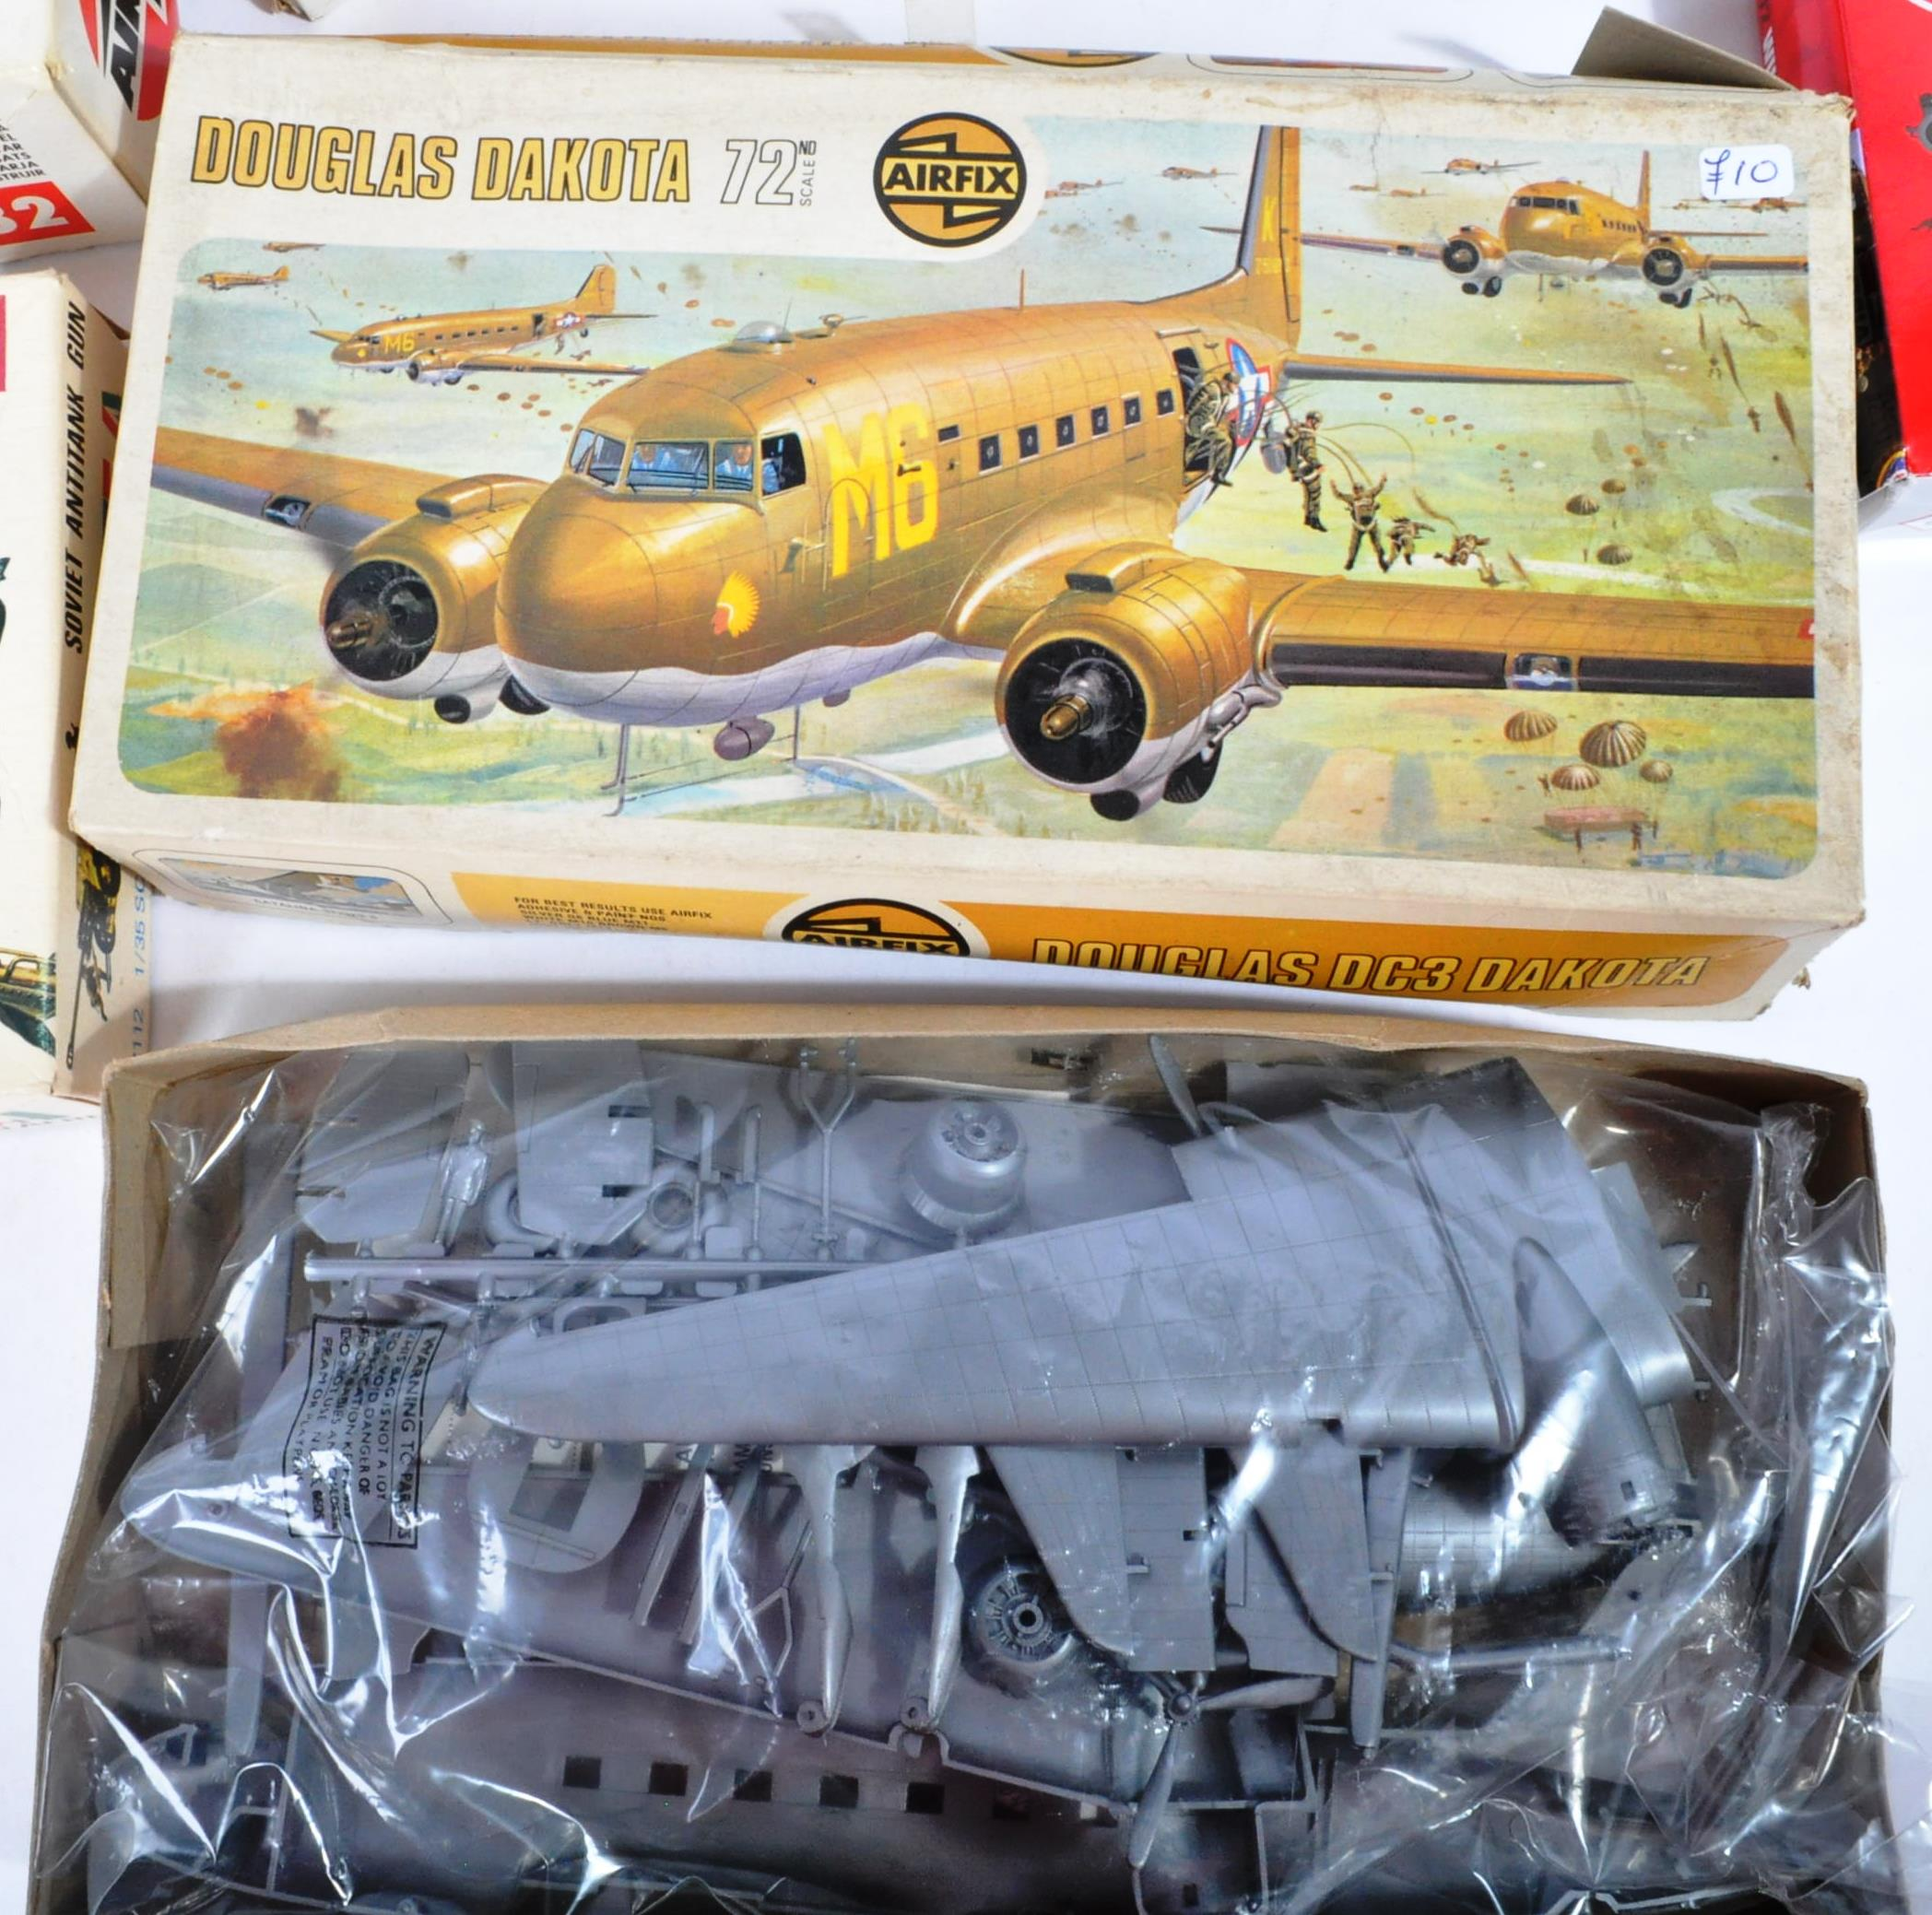 COLLECTION OF ASSORTED AIRFIX AND REVELL PLASTIC MODEL KITS - Image 6 of 8